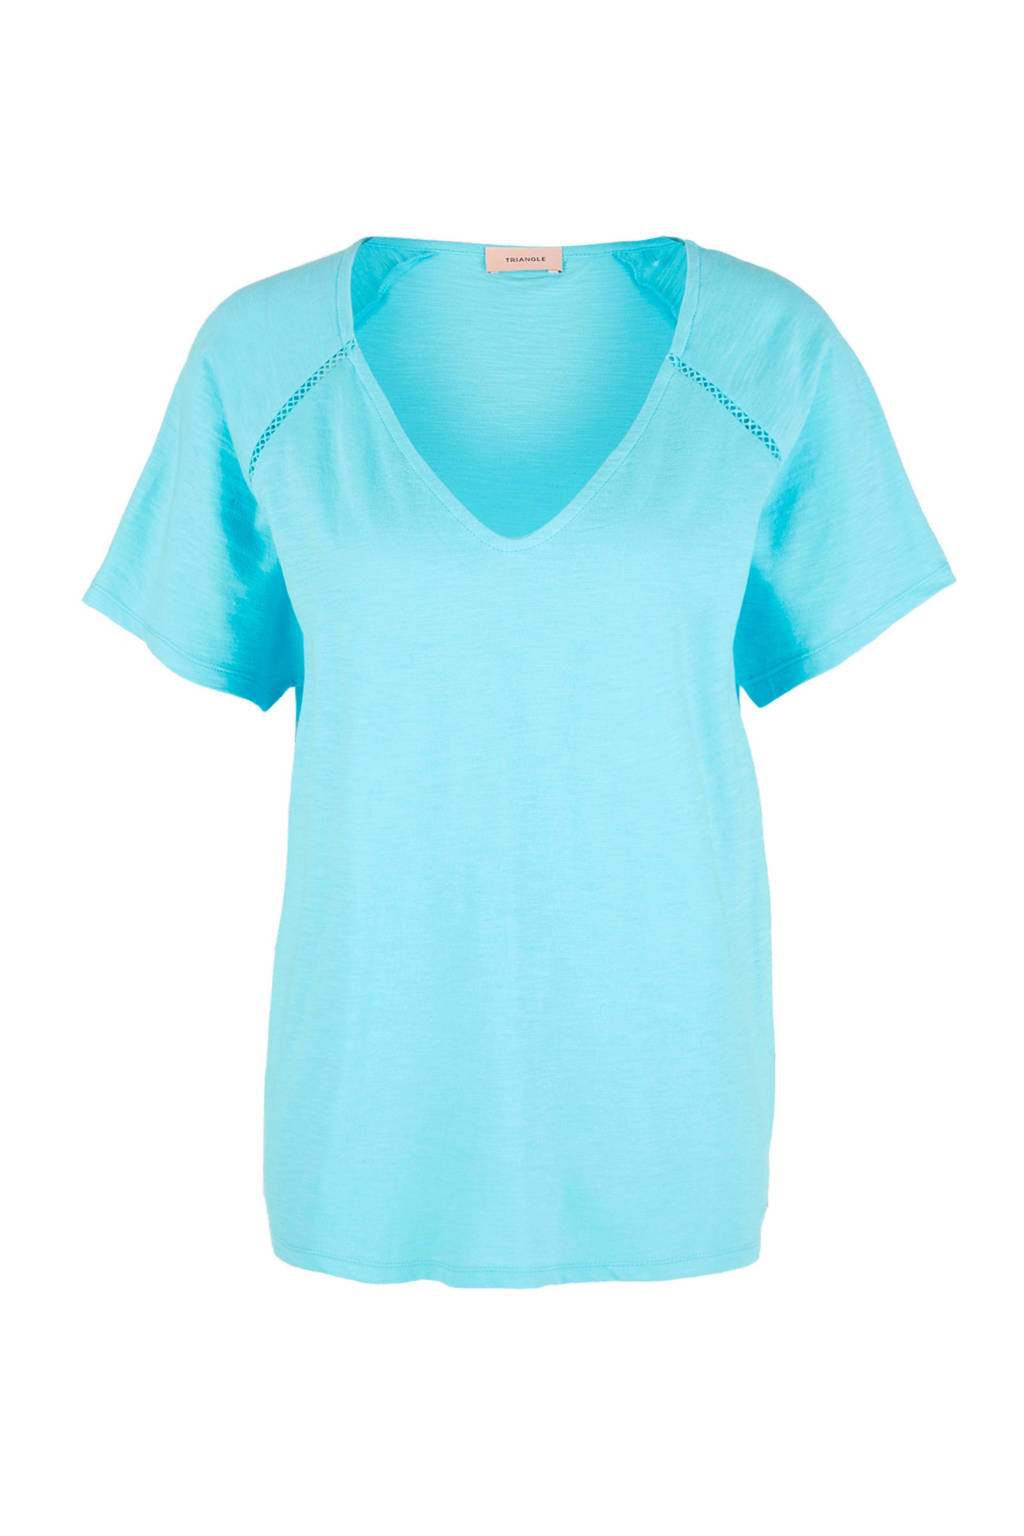 TRIANGLE T-shirt turquoise, Turquoise